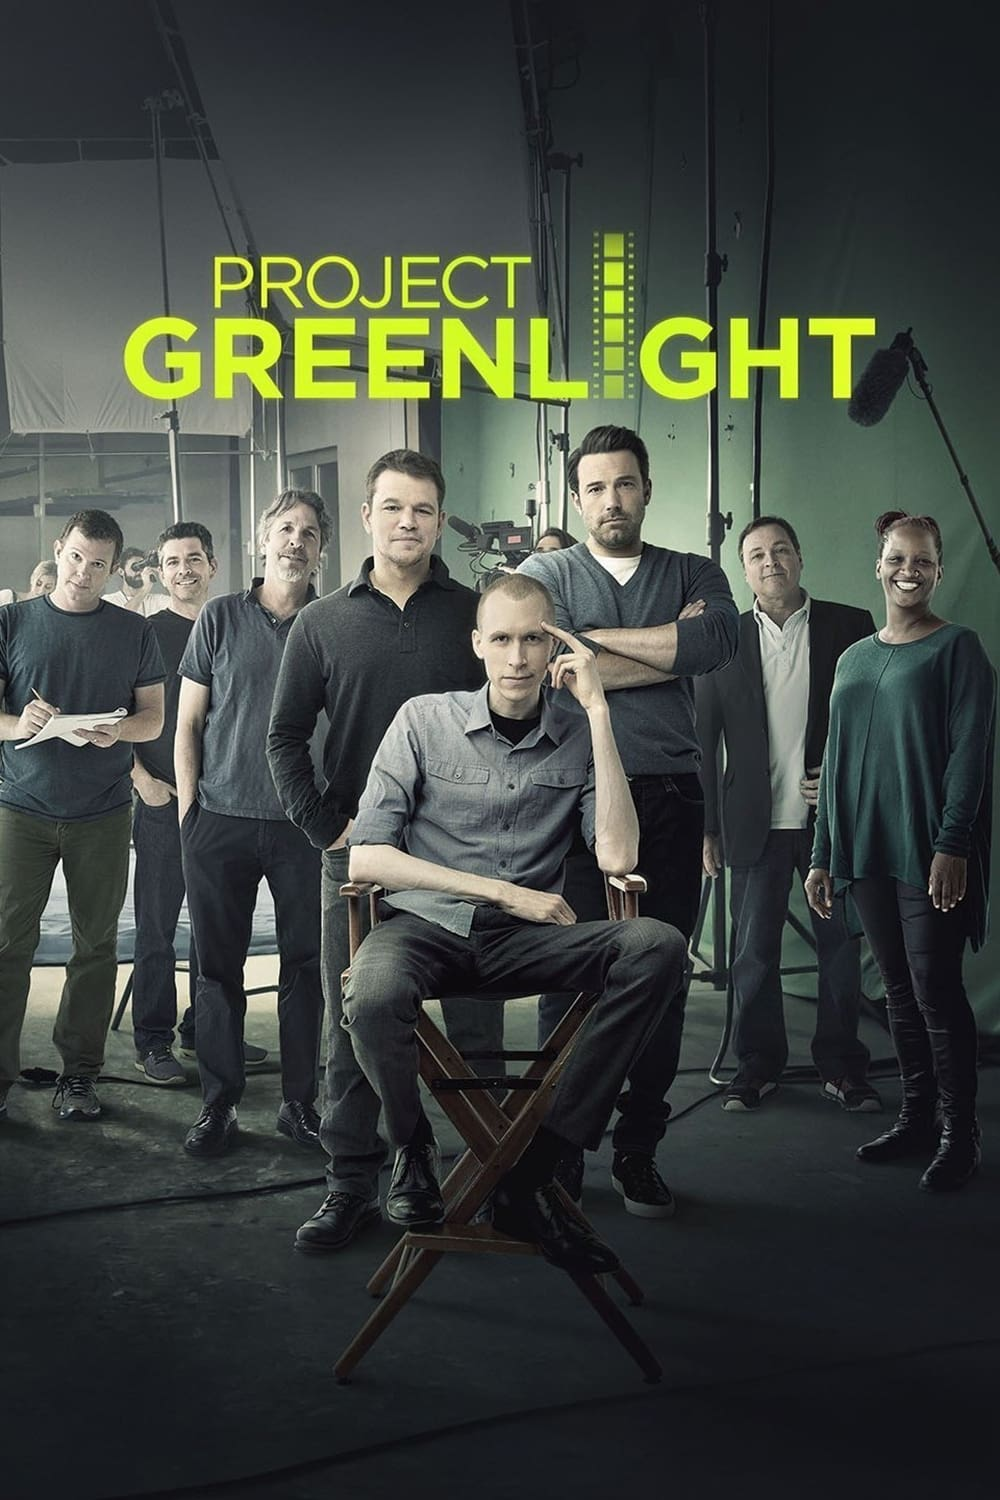 Project Greenlight